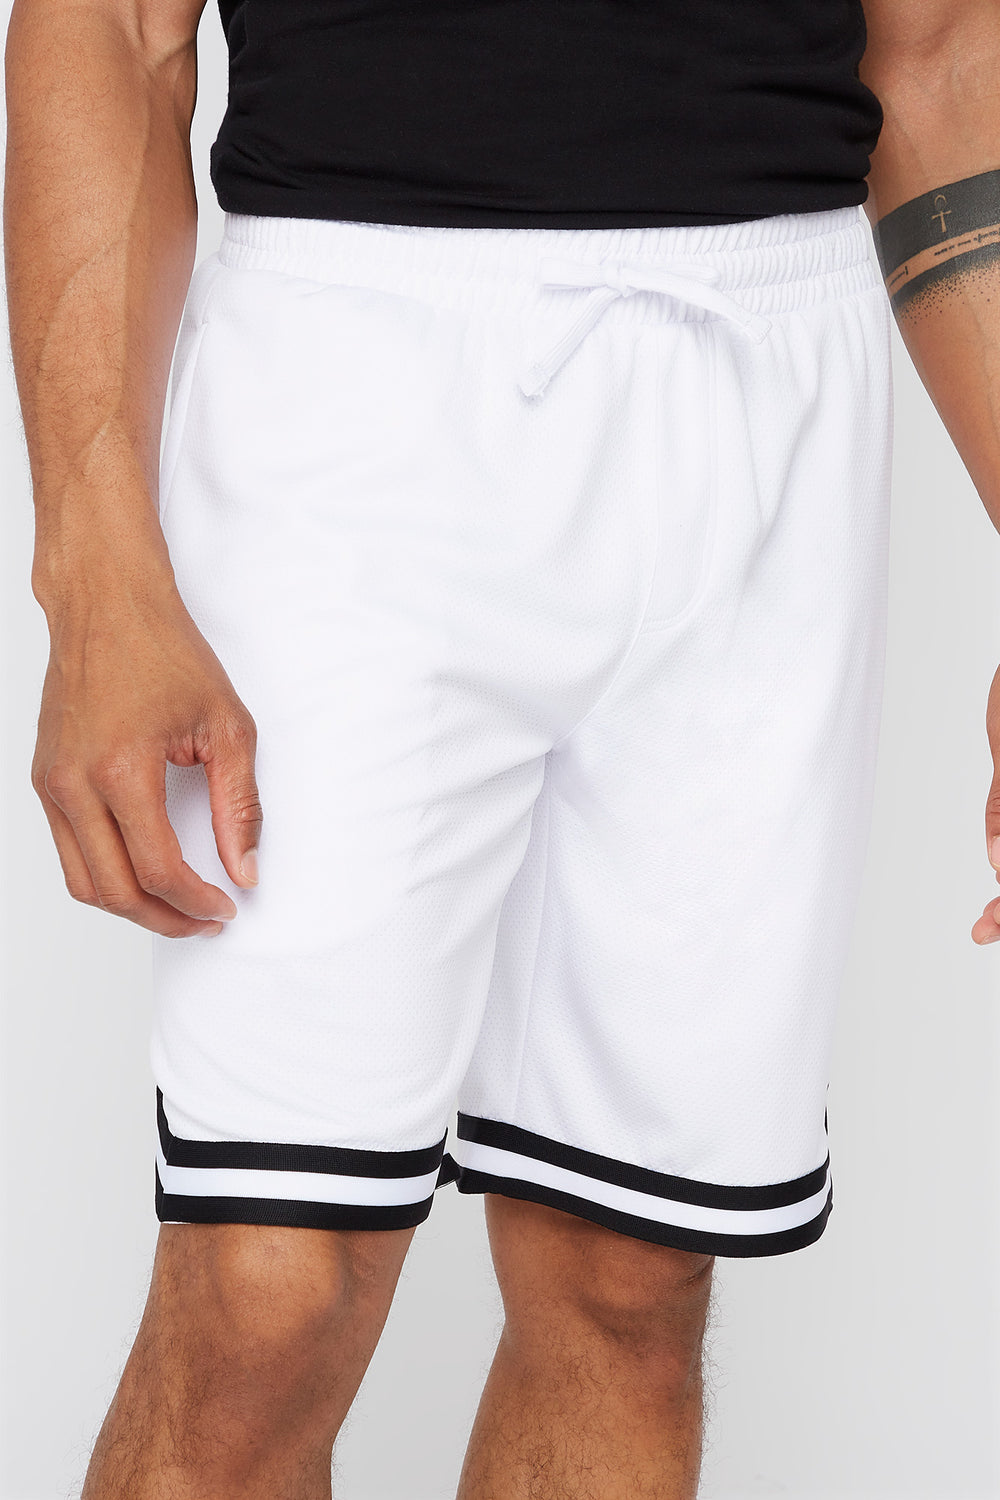 Rocawear Basketball Short White